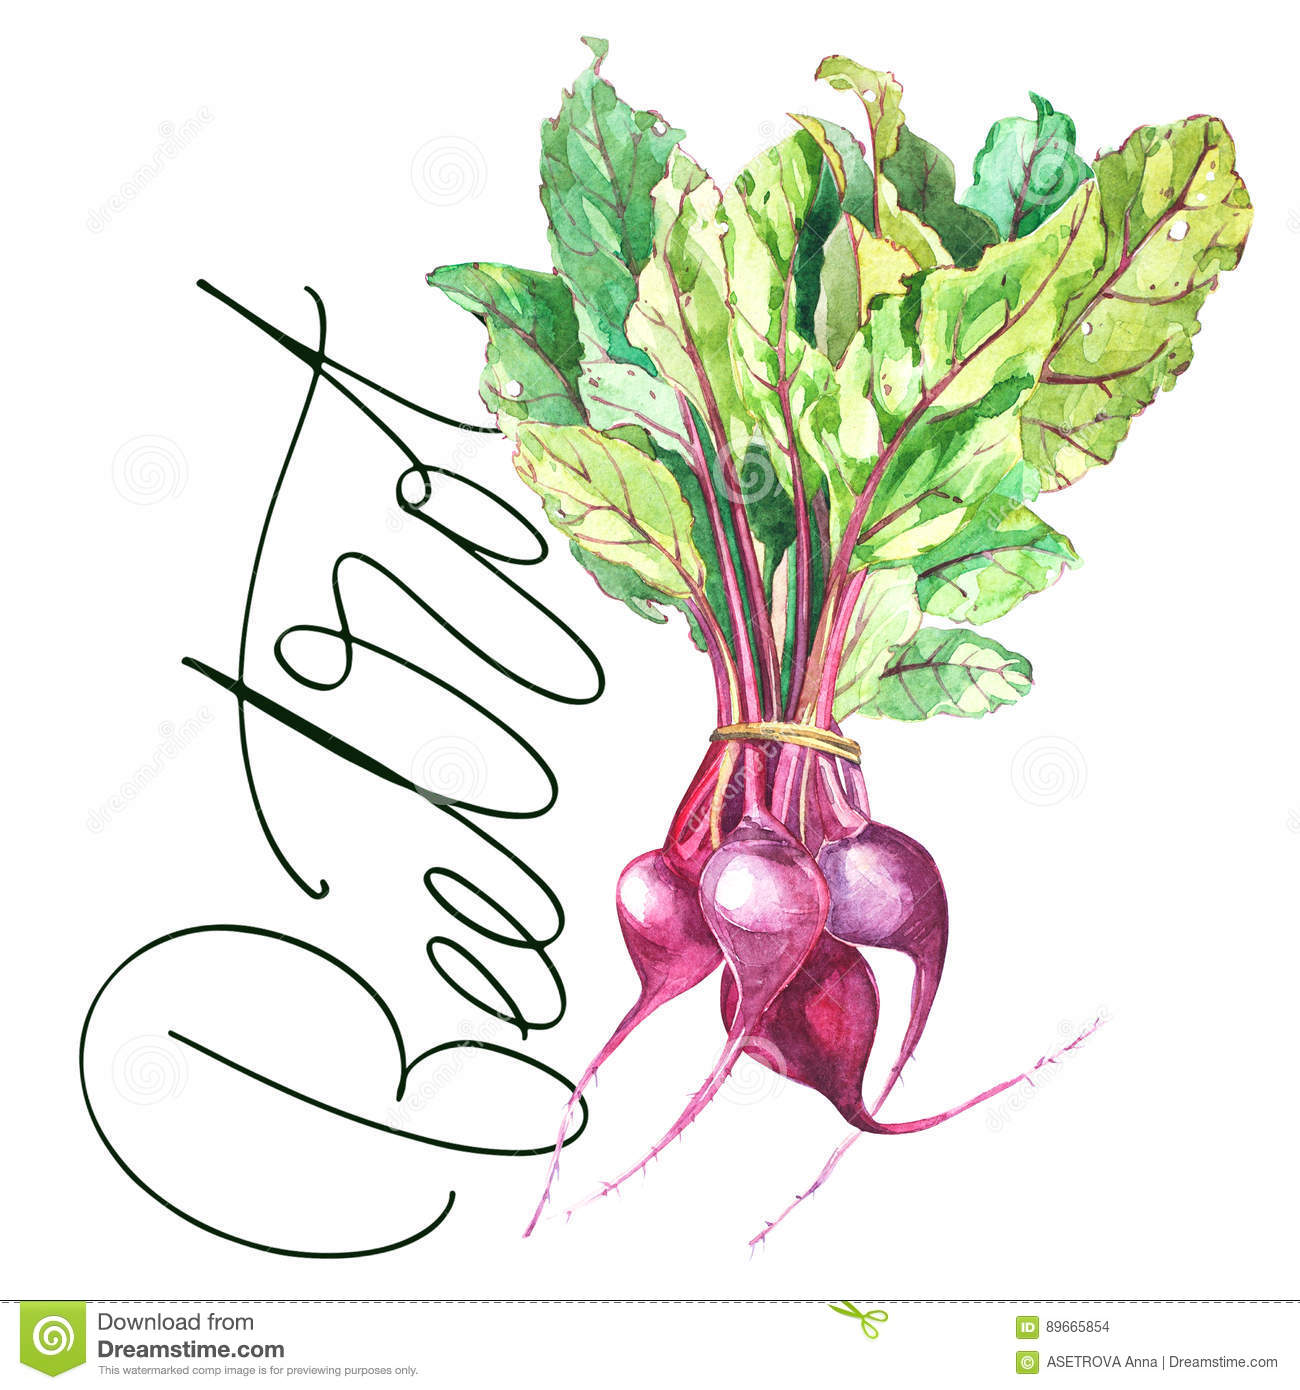 Beet Beetroot With Leaves Isolated Illustration Hand Drawn Painted